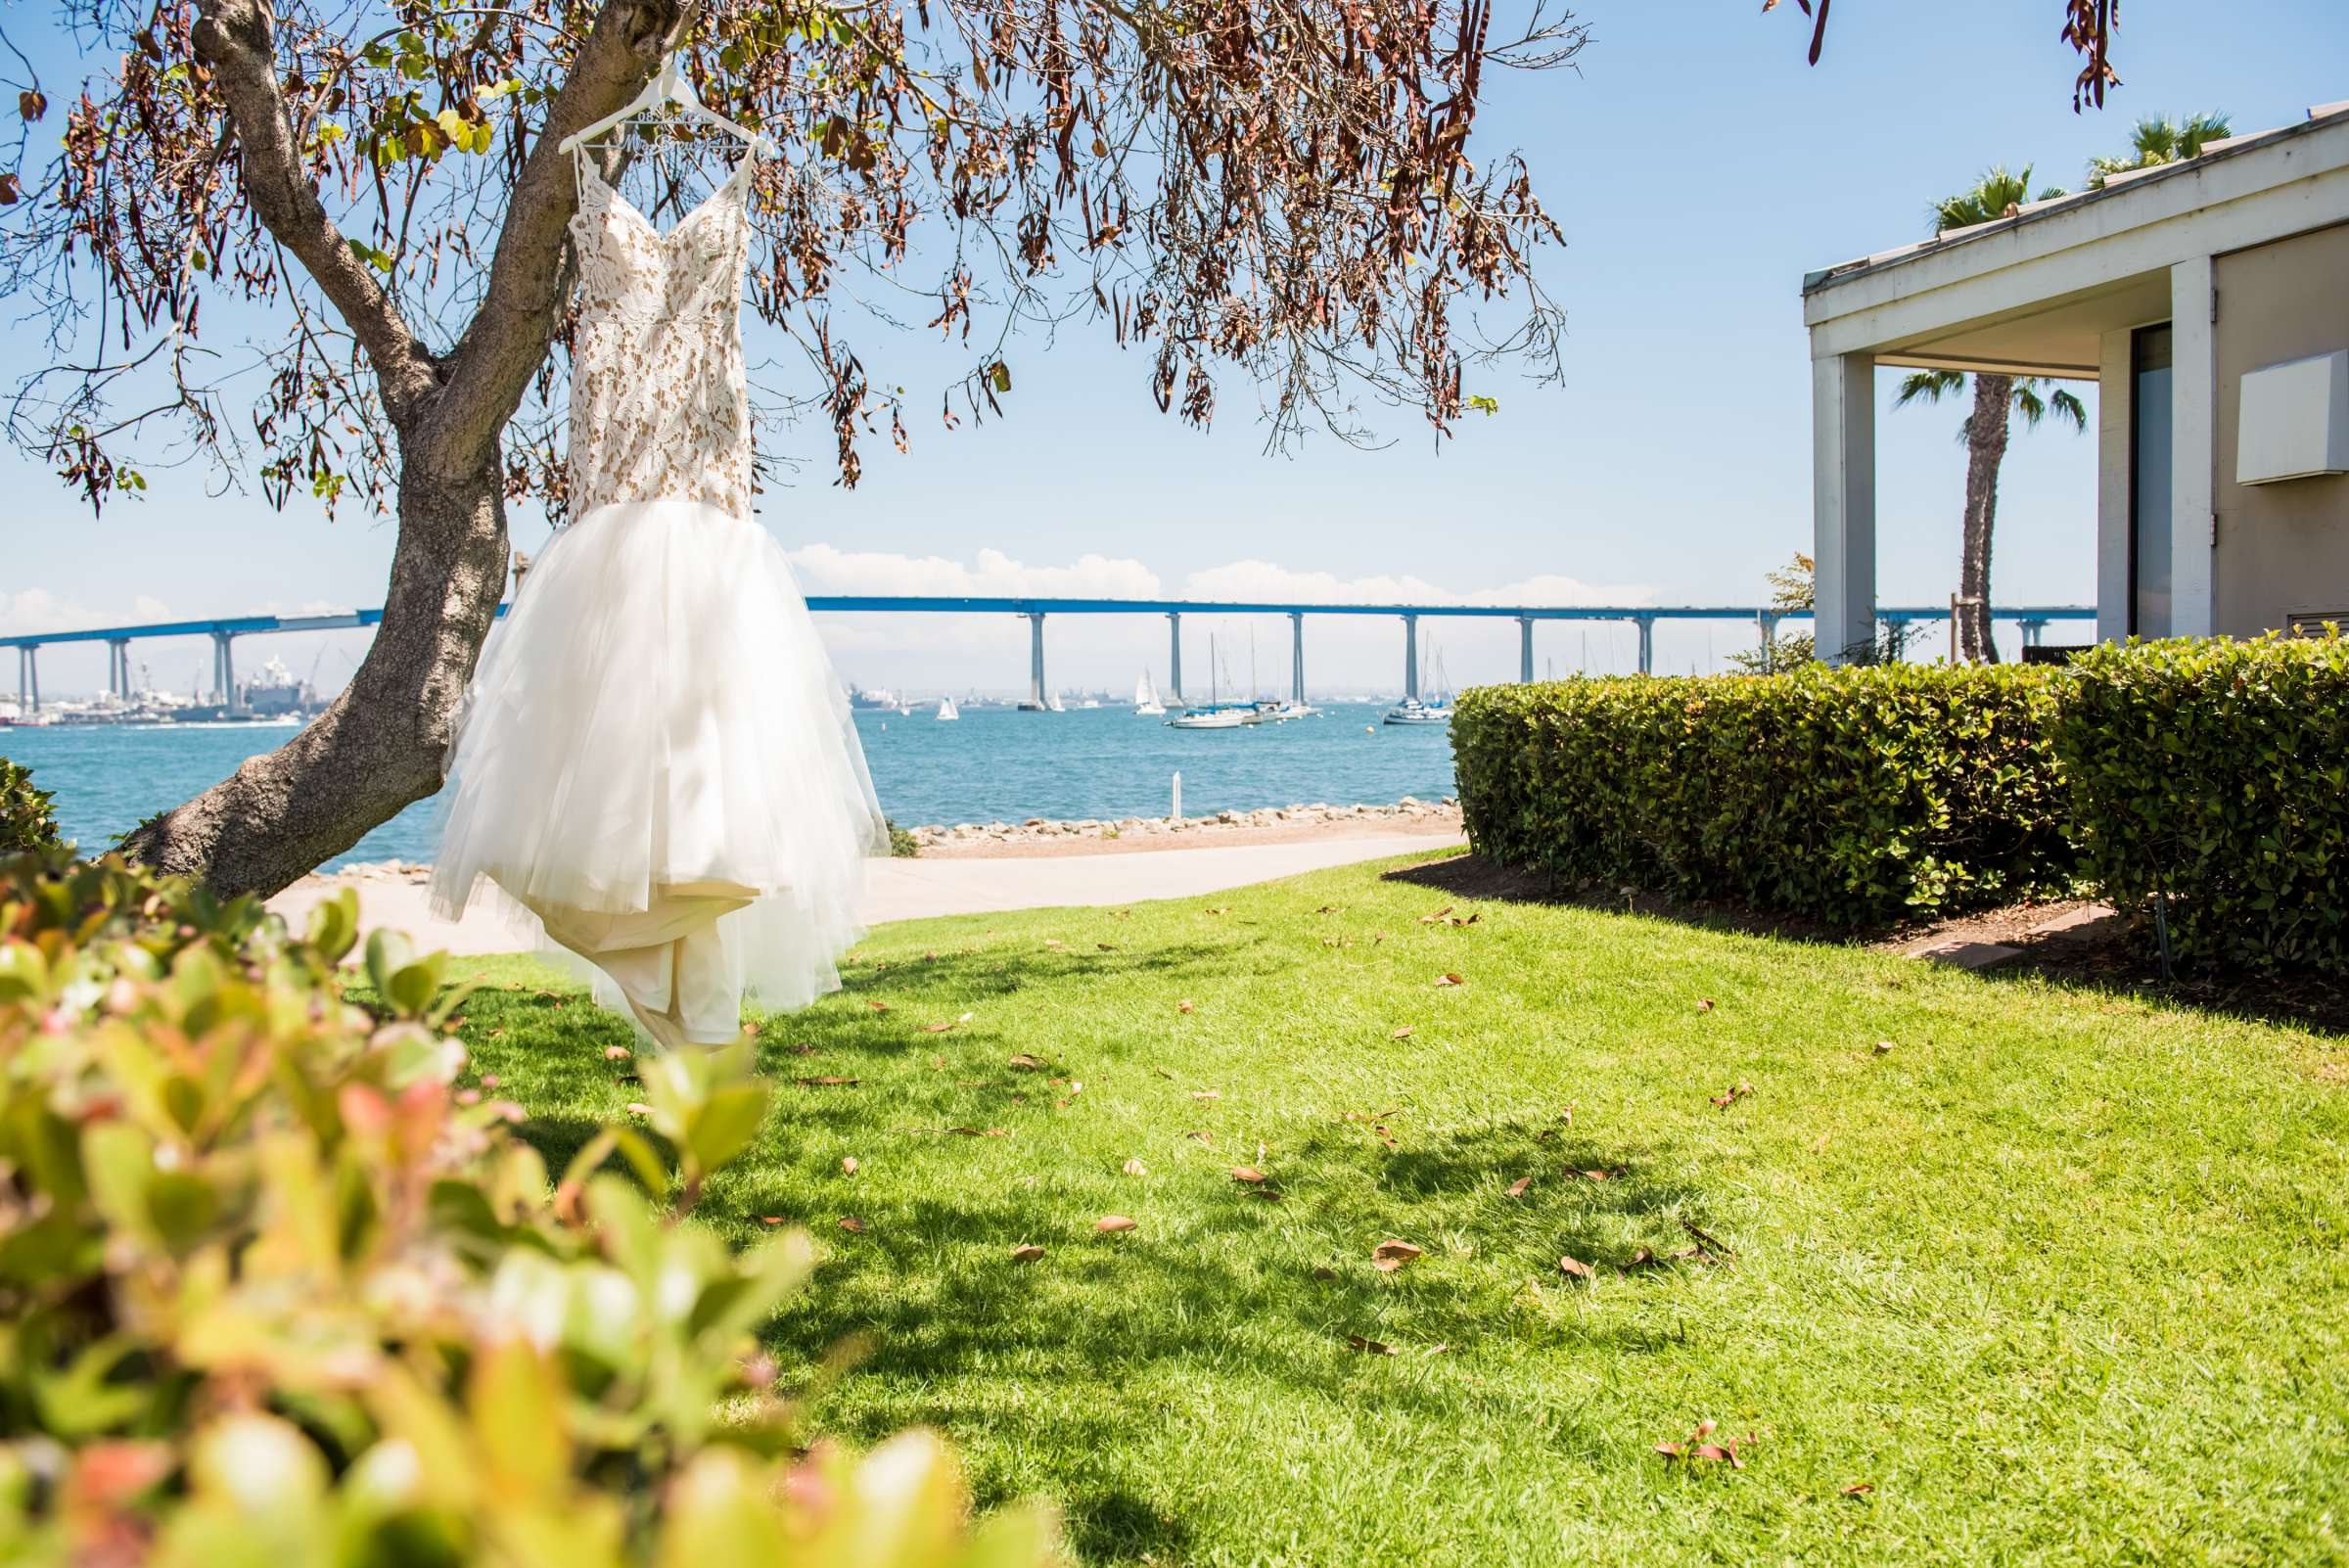 Coronado Island Marriott Resort & Spa Wedding coordinated by Bluestocking Weddings & Events, Ashleigh and Christopher Wedding Photo #157 by True Photography